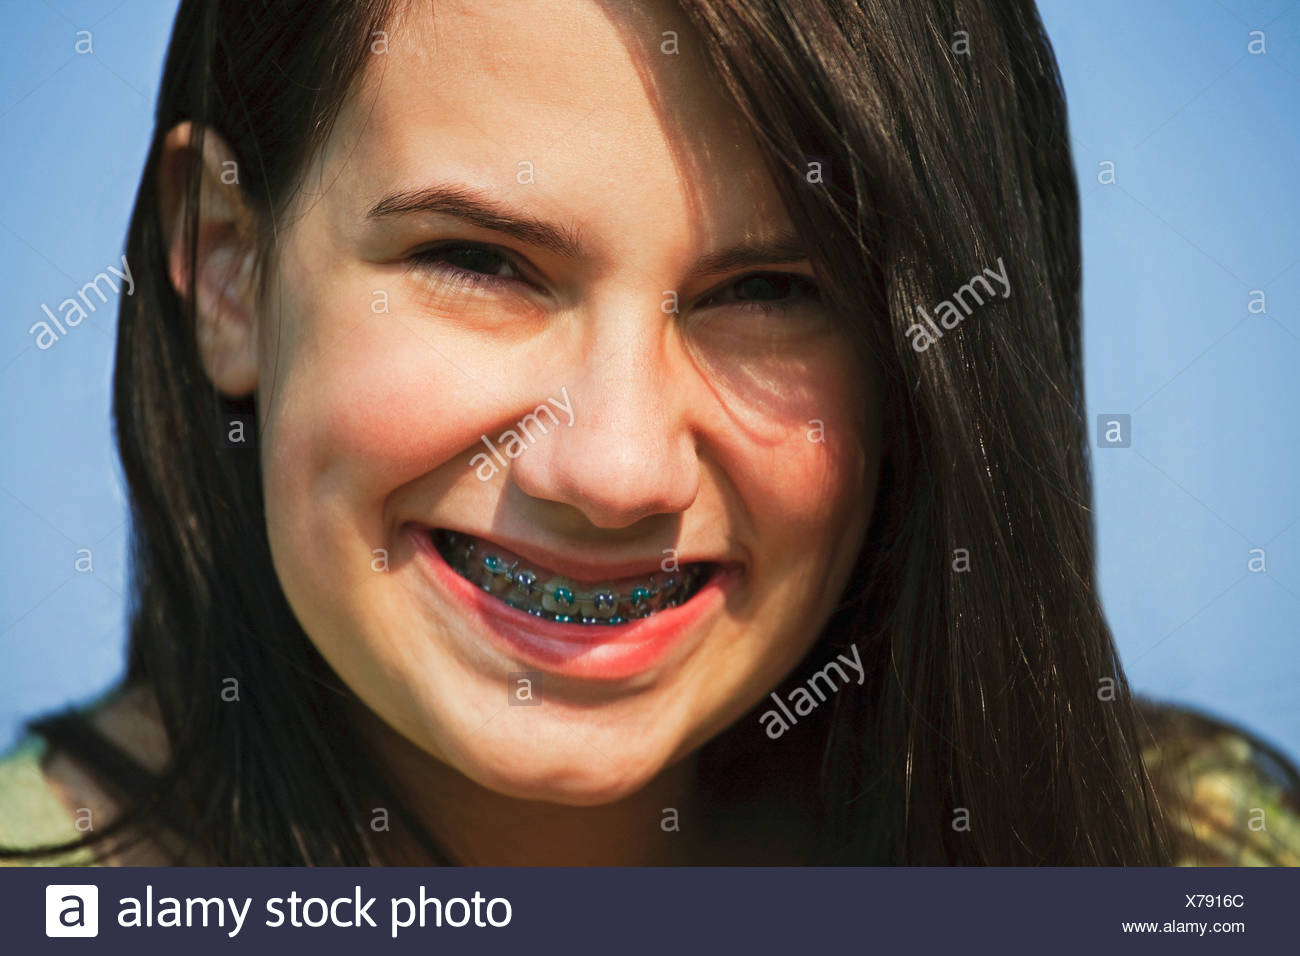 Orthodontic Stock Photos Amp Orthodontic Stock Images Alamy